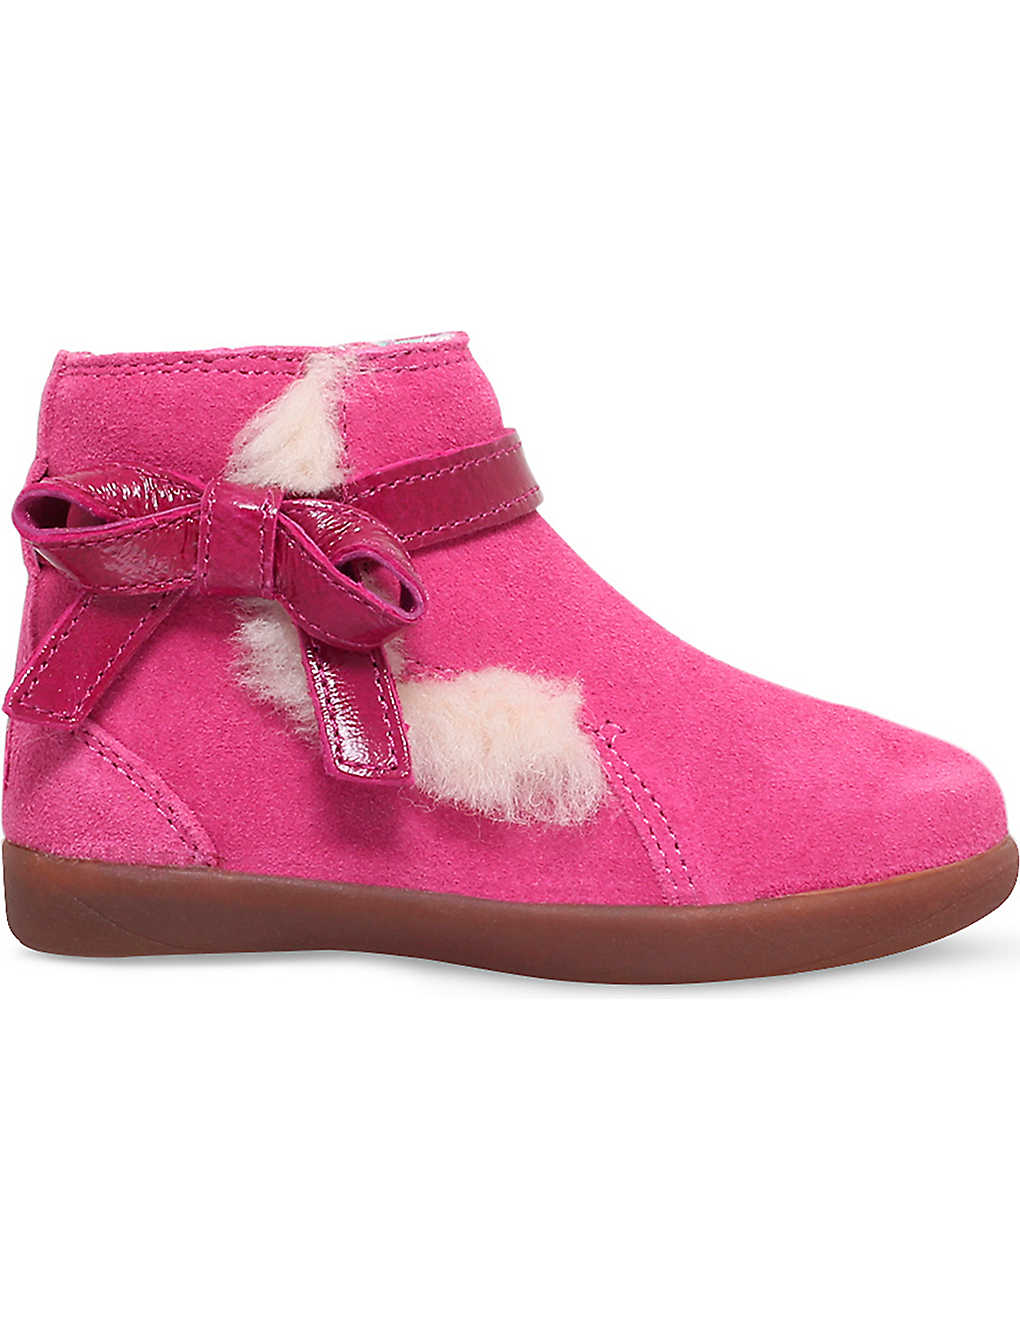 1cf553e0fb1 UGG - Libbie bow-detail suede boots 2-5 years | Selfridges.com